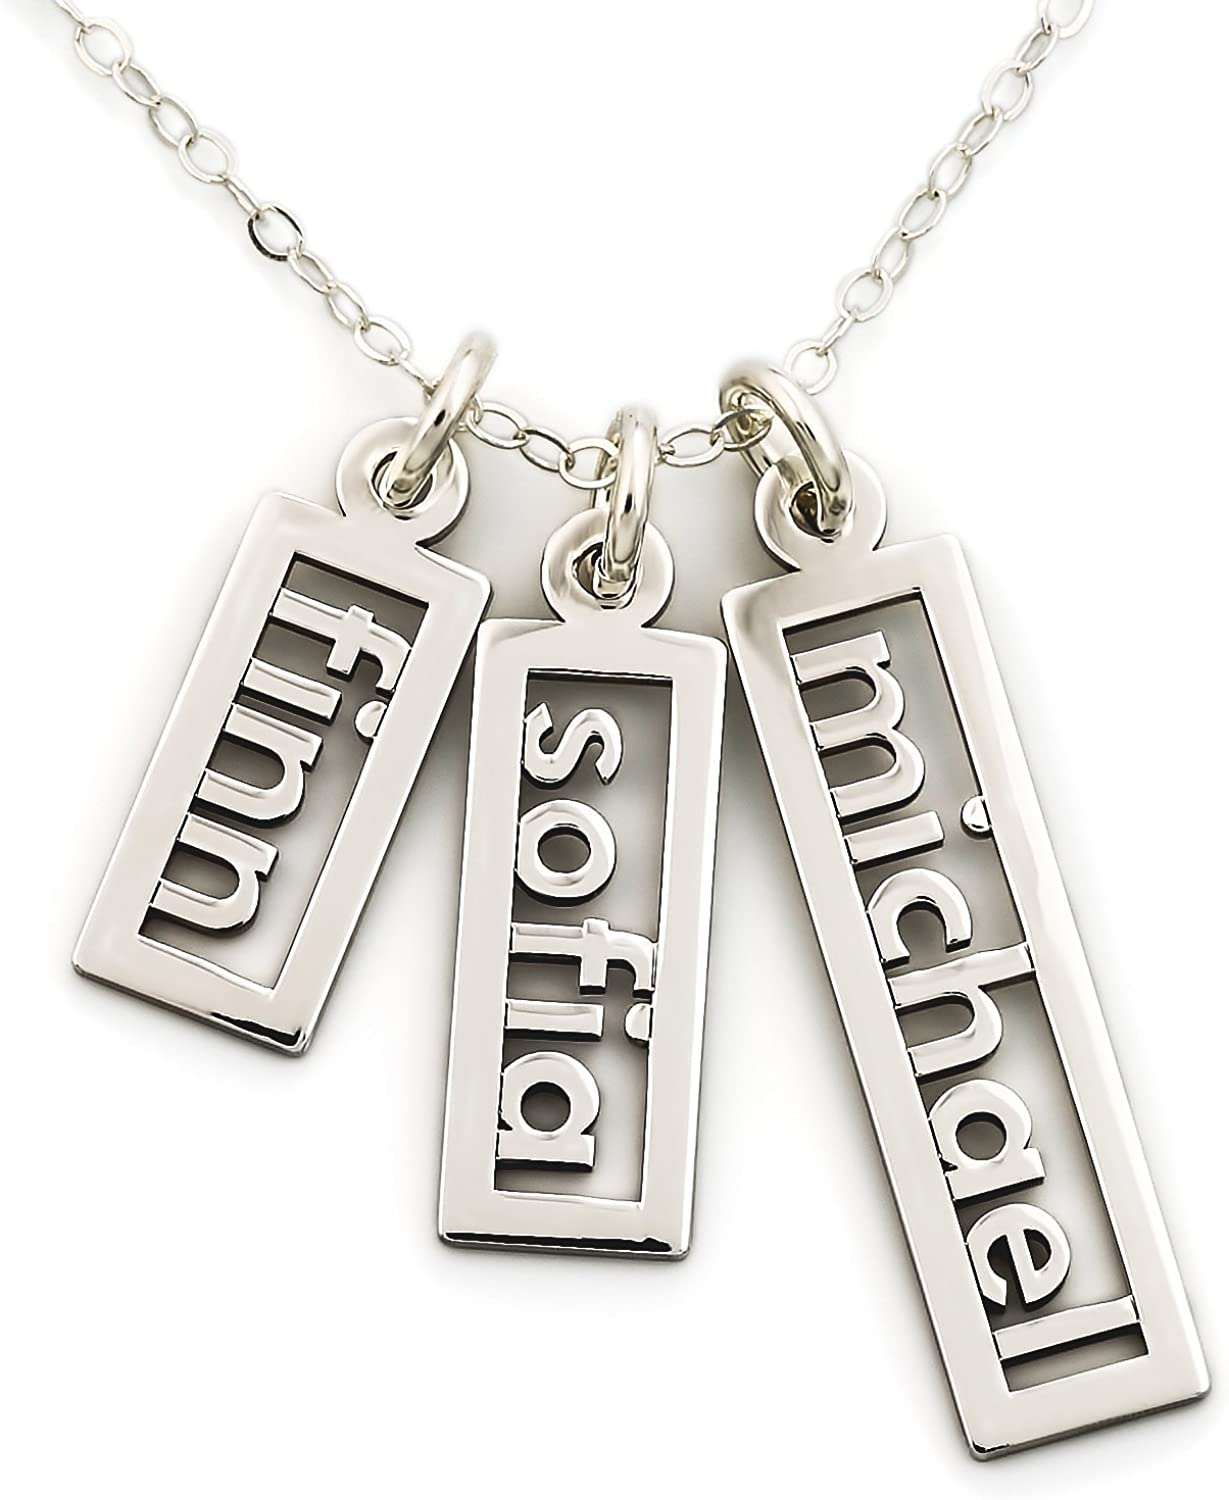 AJ's Collection Personalized Necklace Open Triple Name Sterling Silver or 14k Gold Plate over Sterling Silver